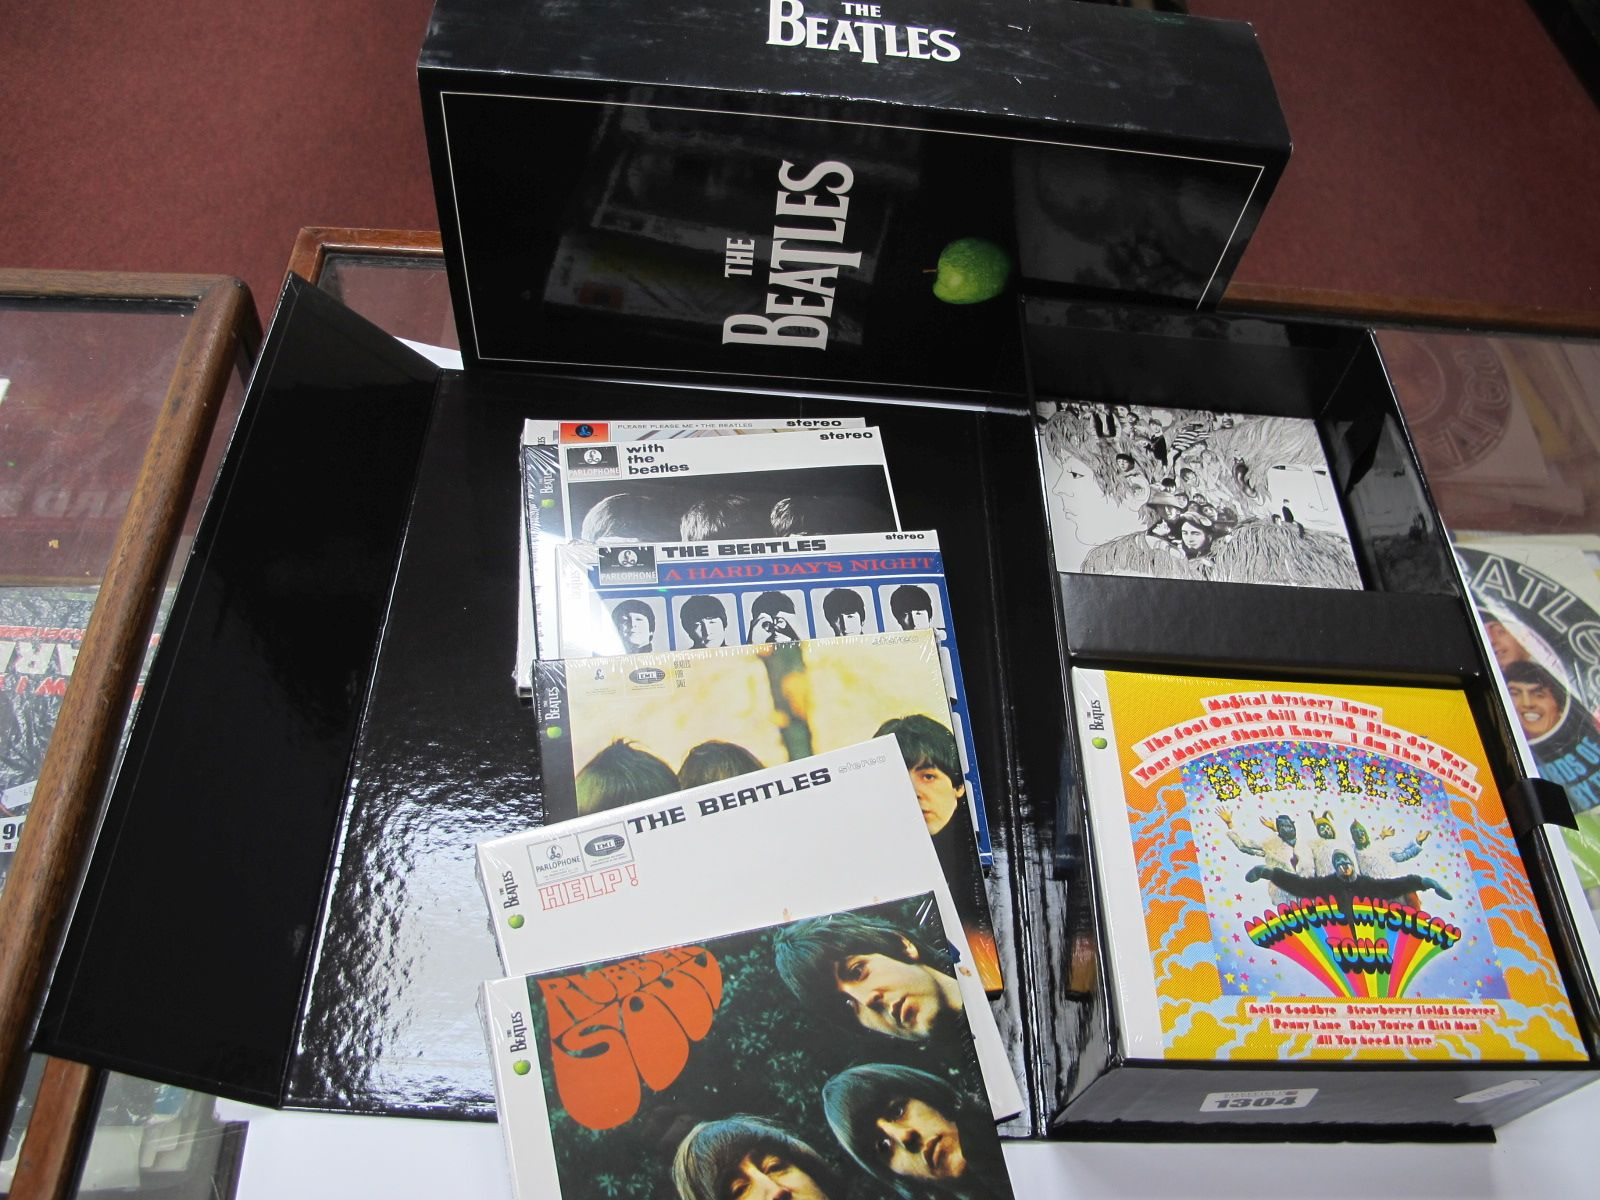 The Beatles CD Collection, featuring all thirteen studio albums, in original box and cover.